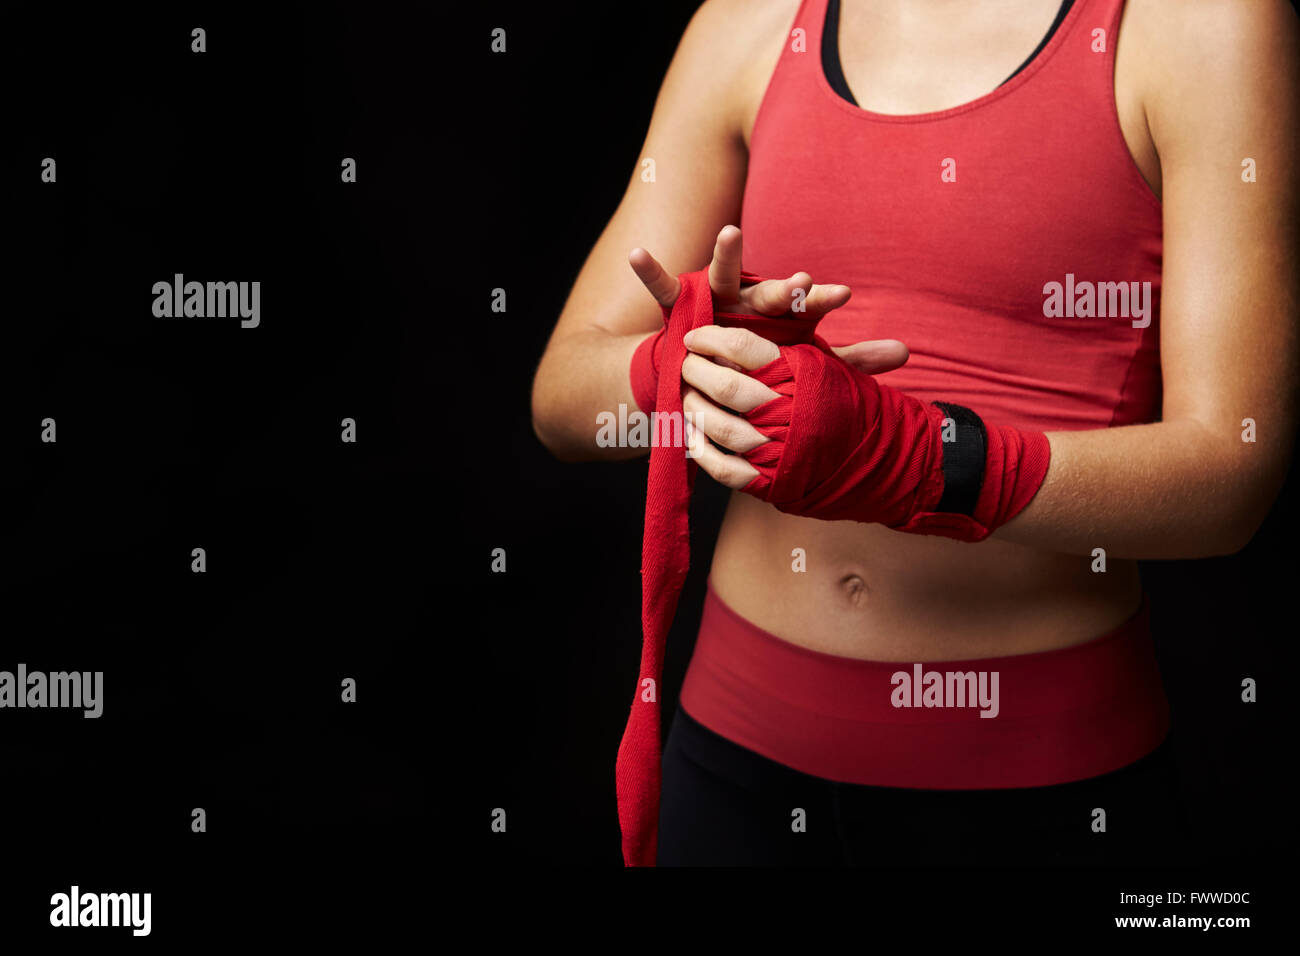 Mid-section of woman wrapping hand for boxing training - Stock Image